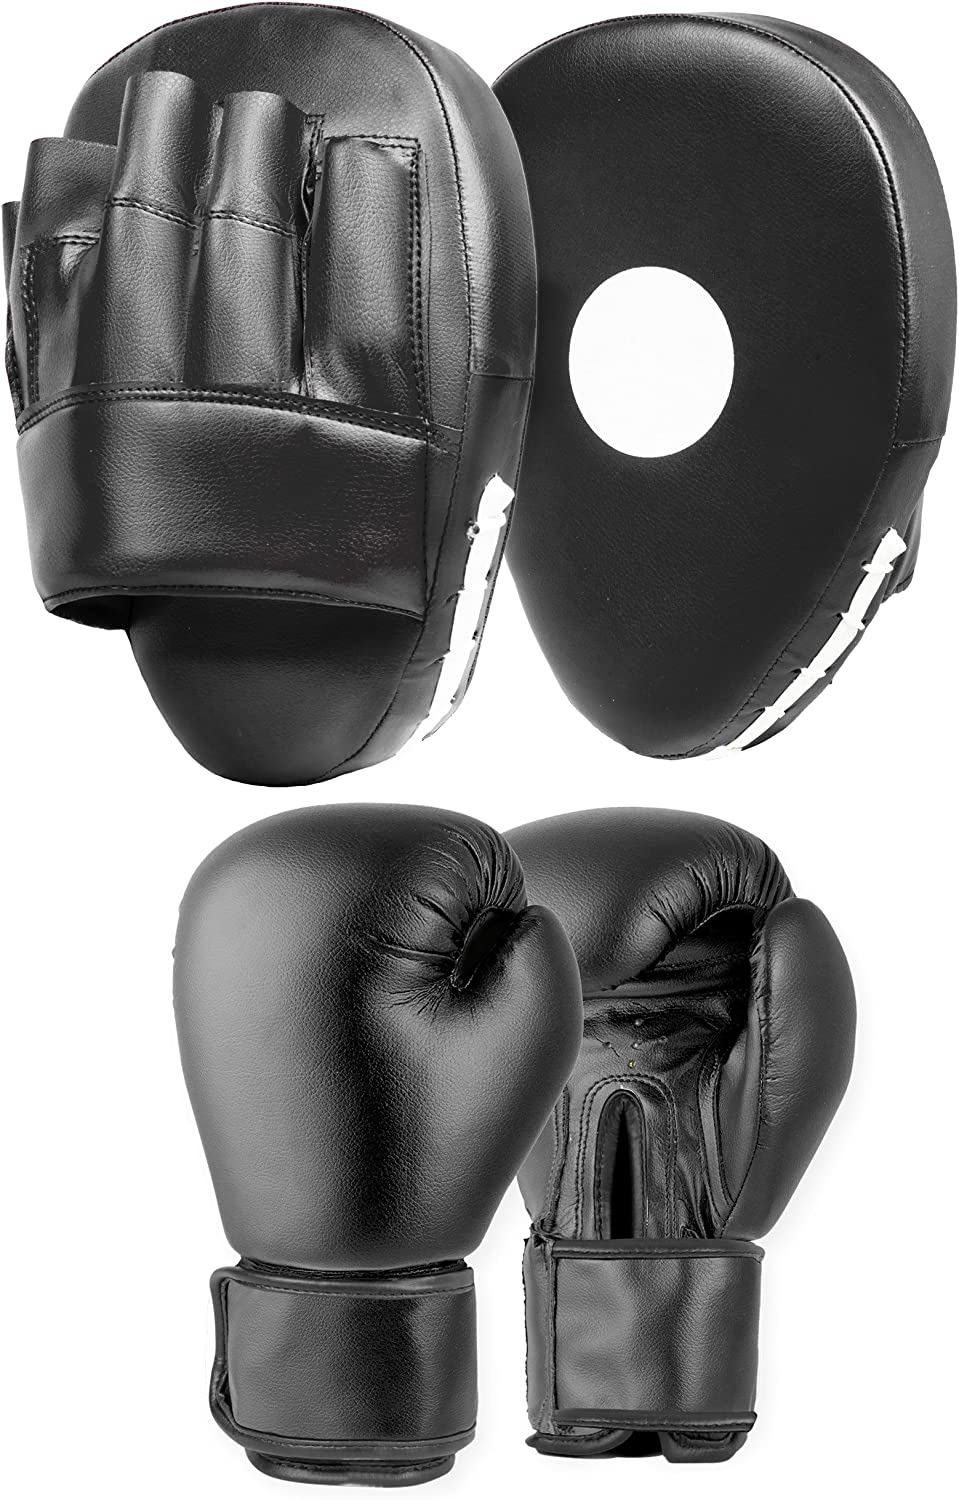 Lions/® Focus Pads Jab /& Hook Boxing Sparring Punching Gloves MMA Mitts Set